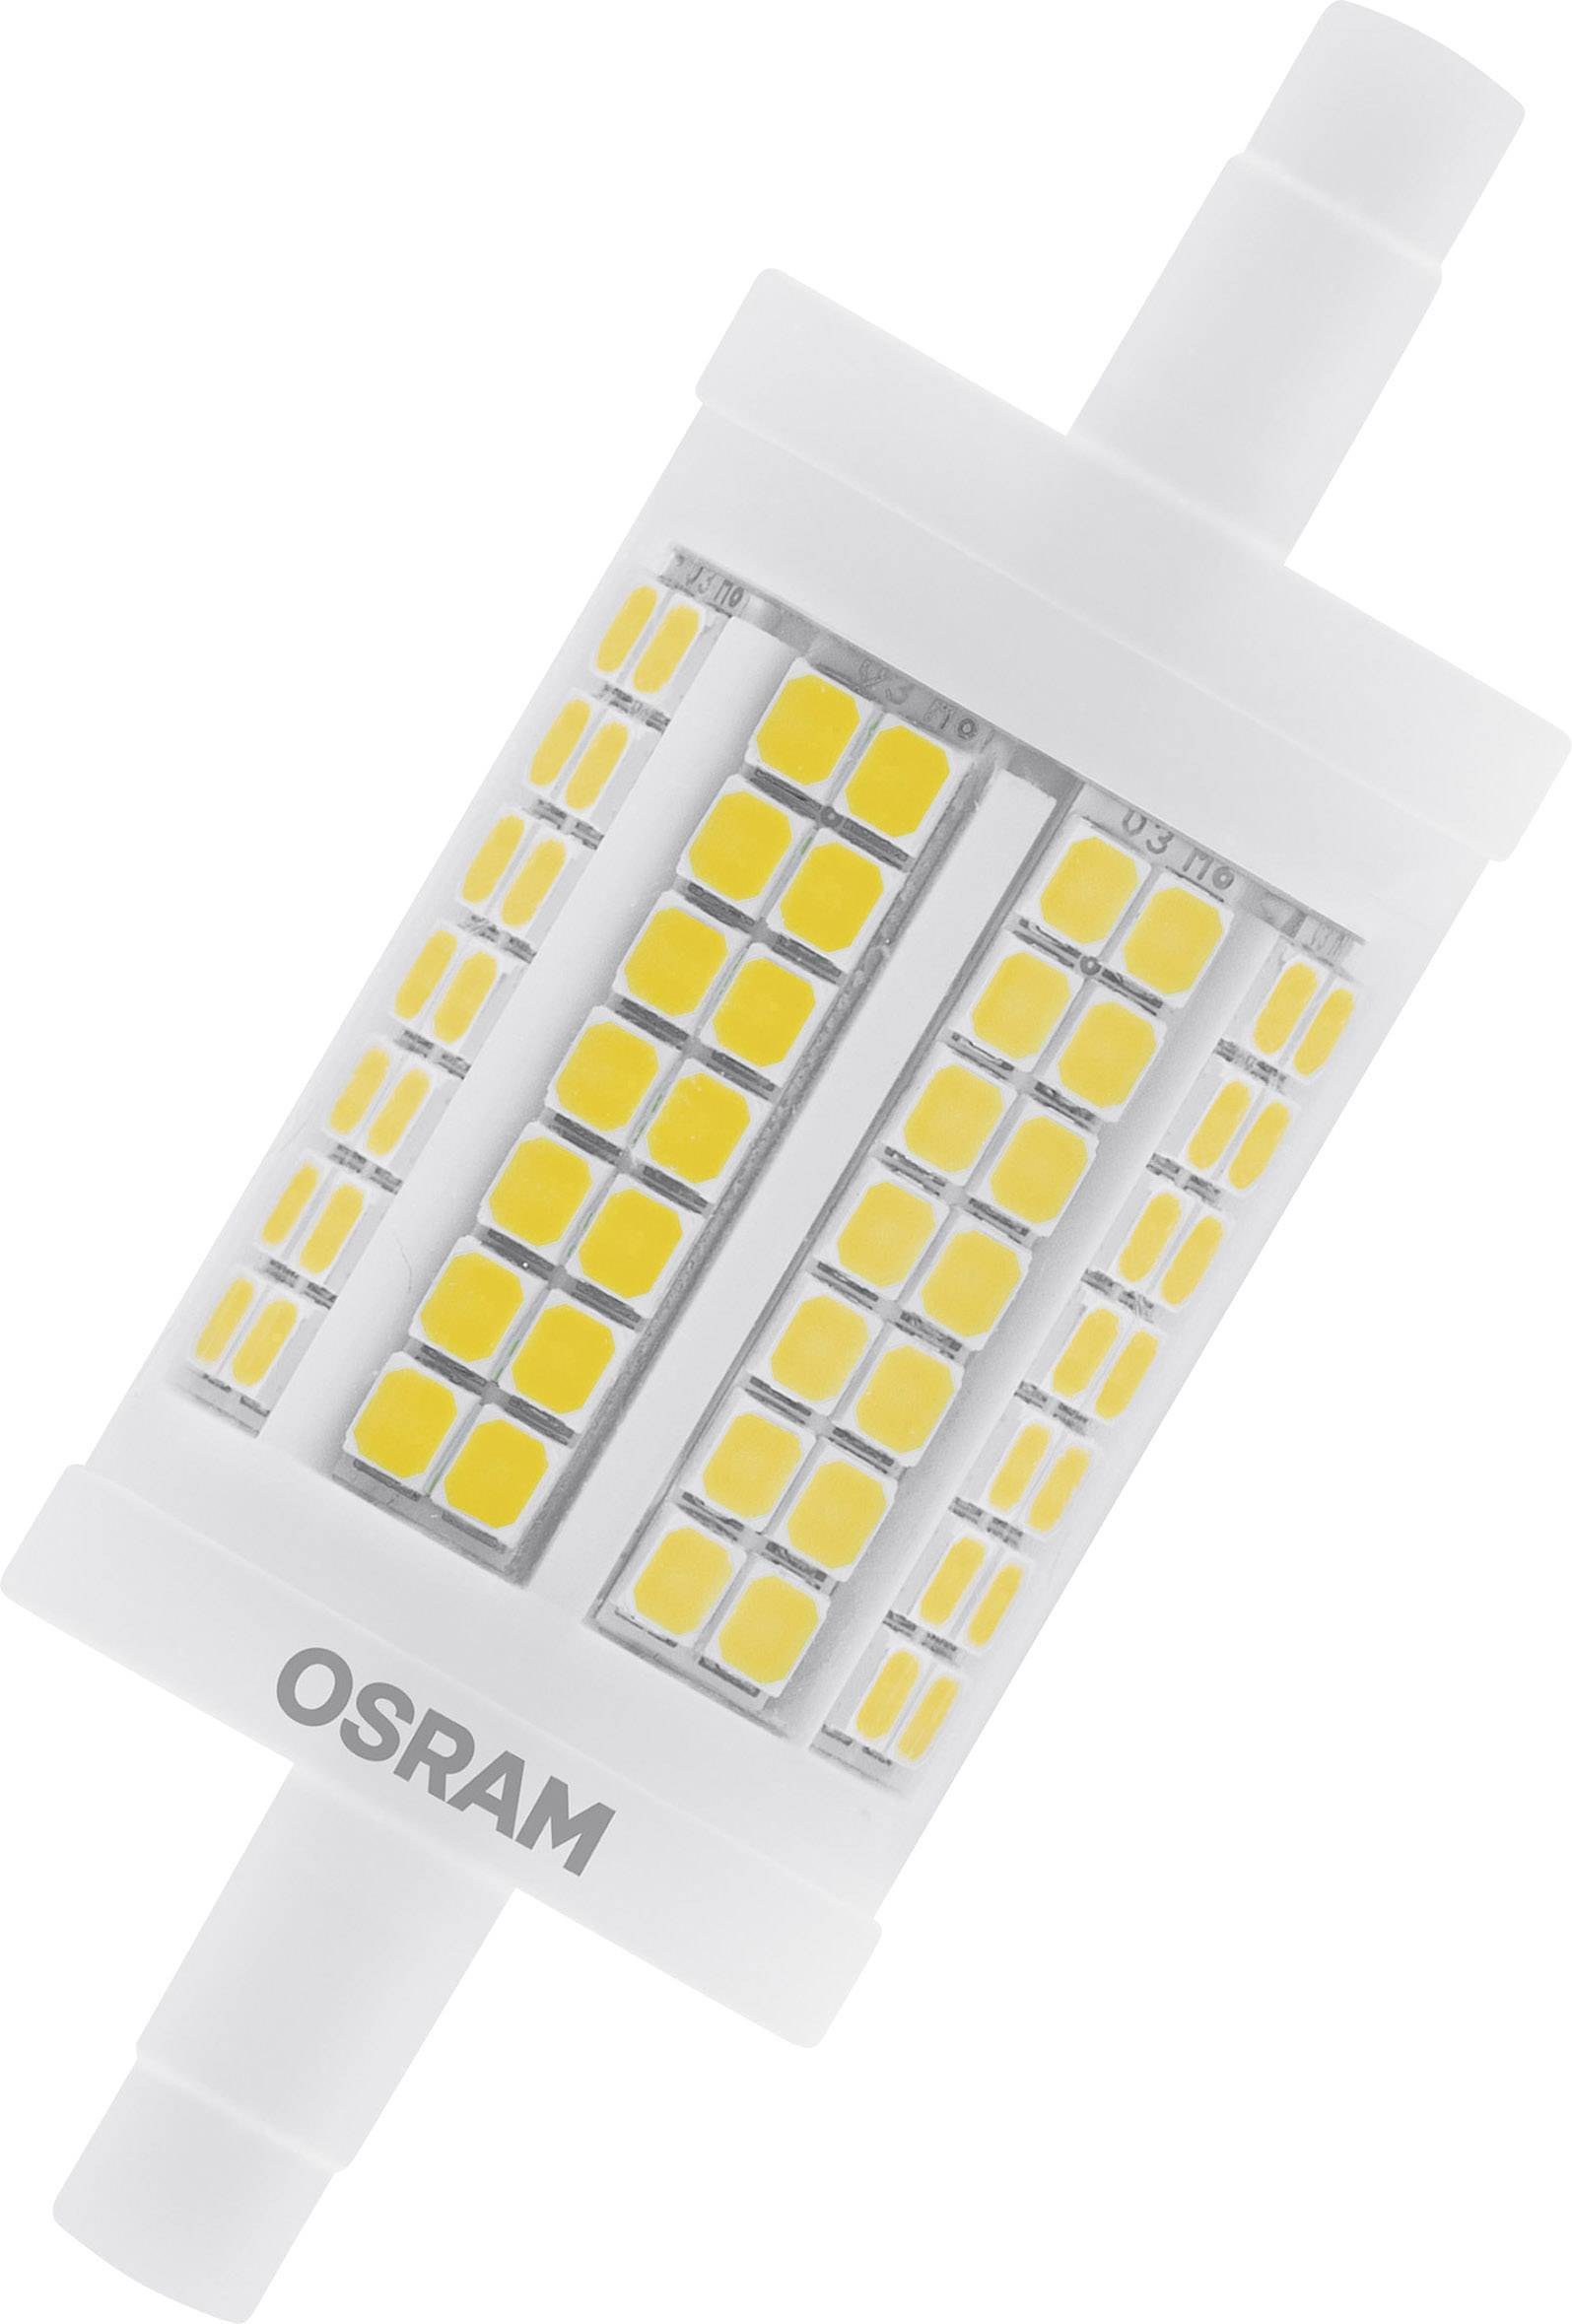 Philips R7s Led Osram Led Energielabel A A E R7s Staaf 11 5 W 100 W Warmwit Ø X L 28 Mm X 78 Mm 1 Stuks